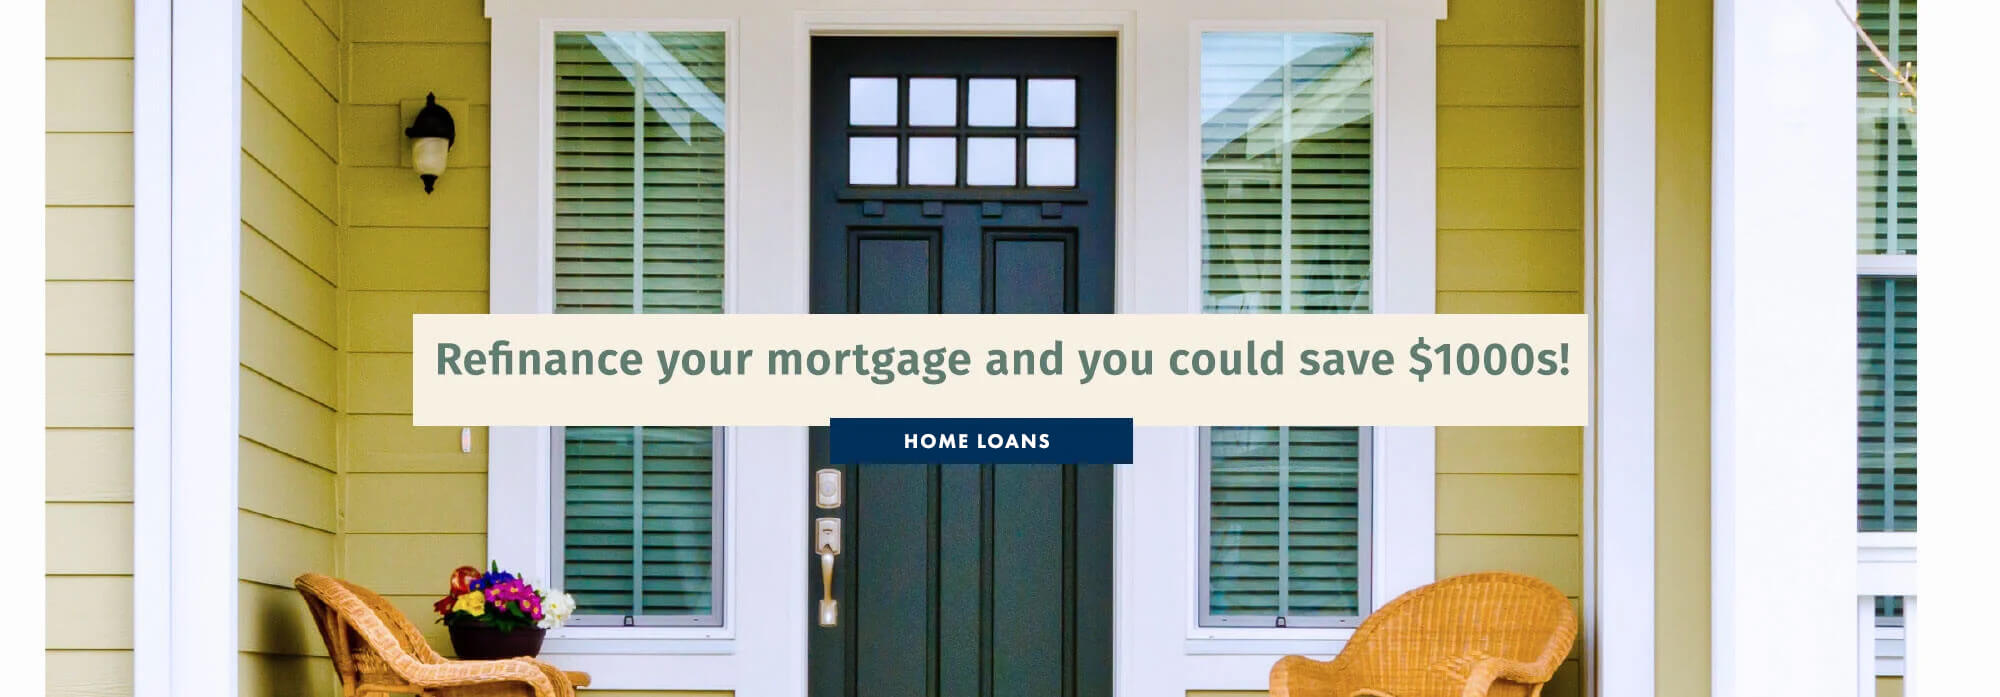 Home Loans. Refinance your mortgage and you could save $1000s!